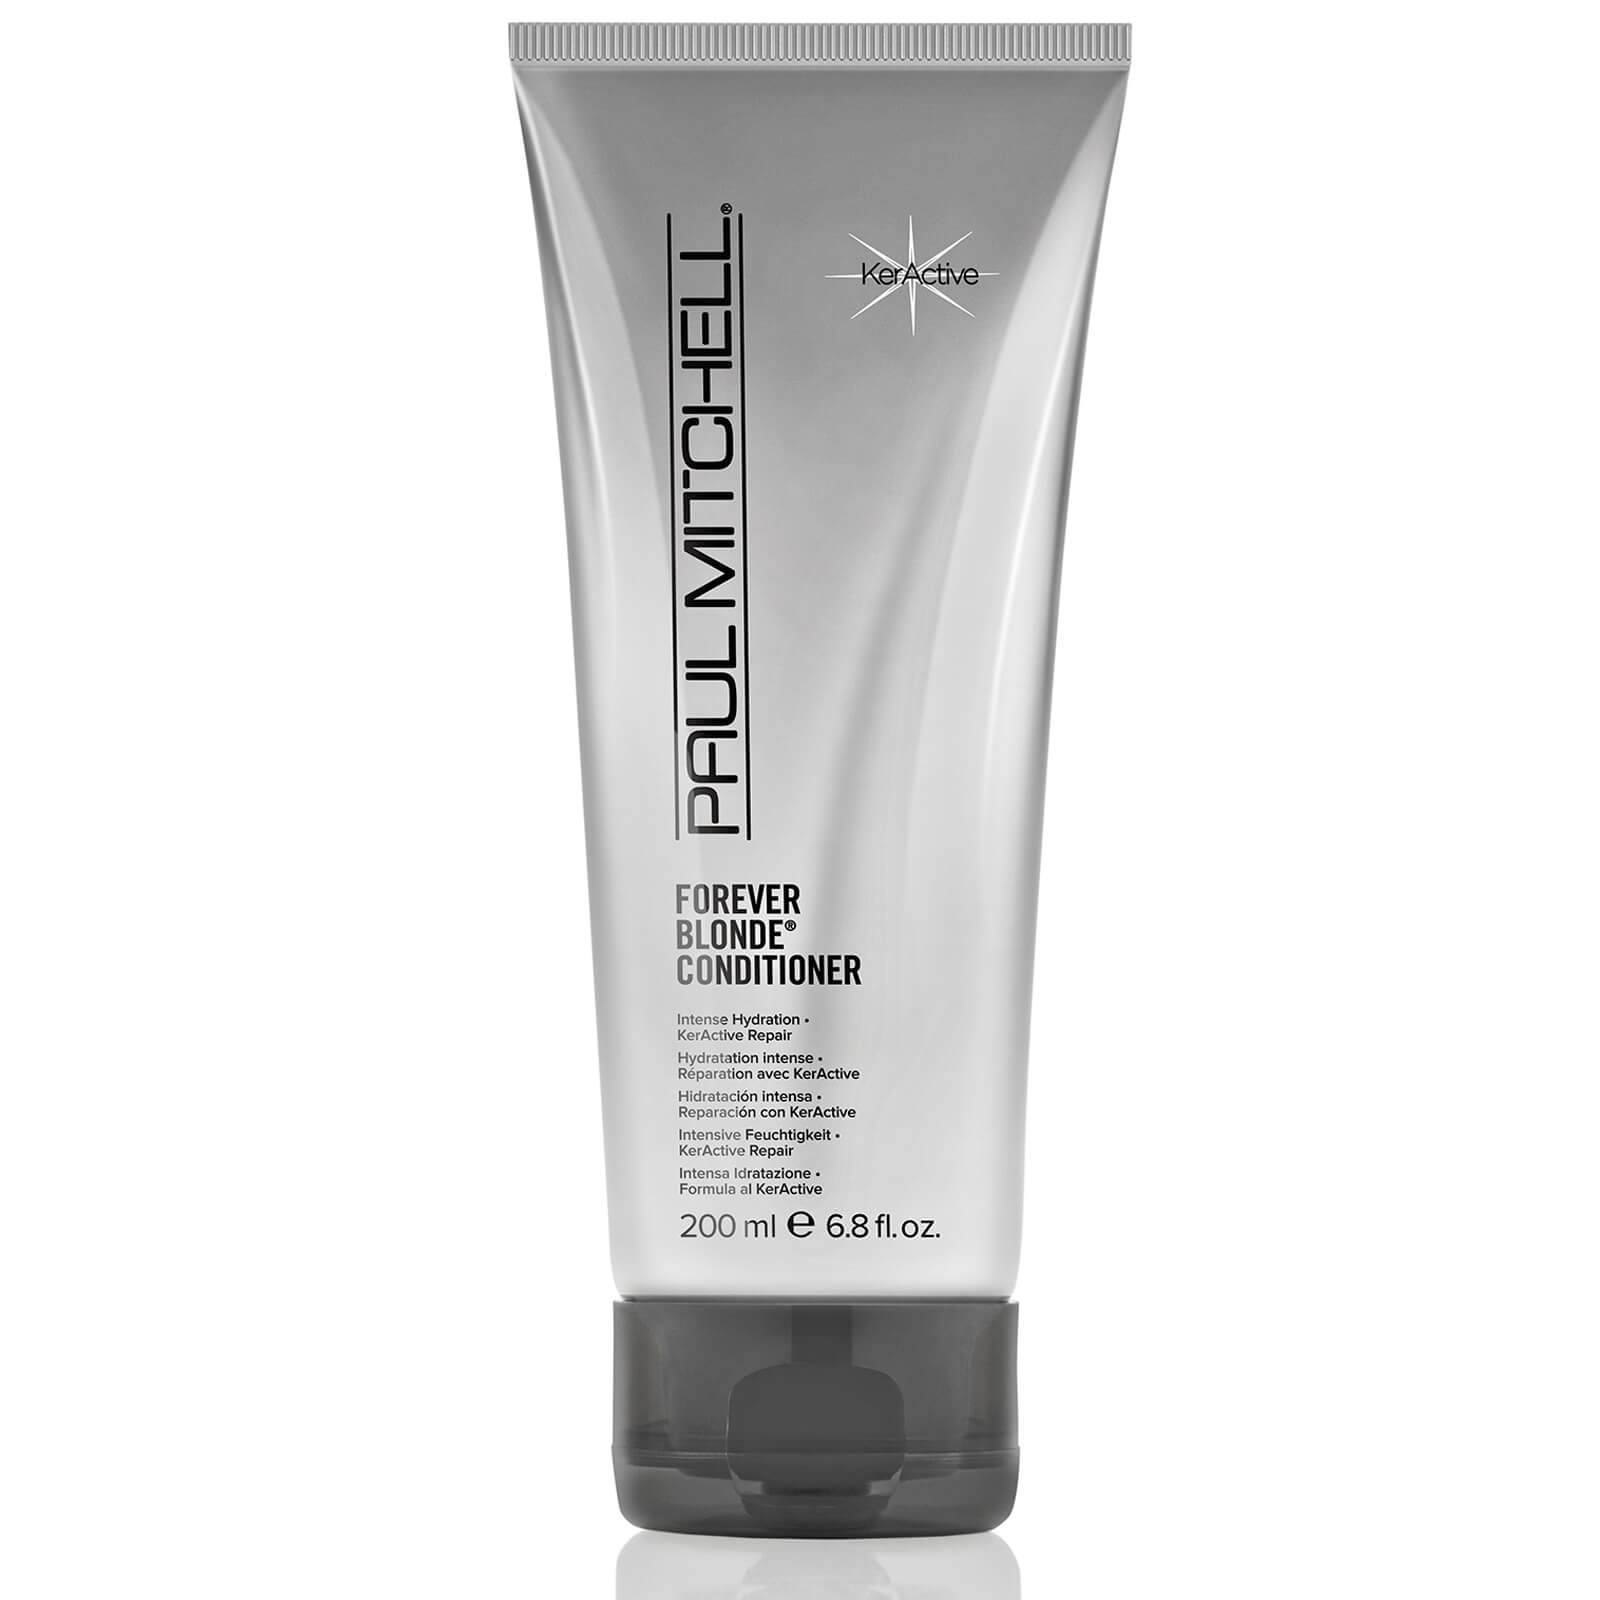 Paul Mitchell Après-shampooing cheveux blonds Paul Mitchell Forever Blonde (200ml)